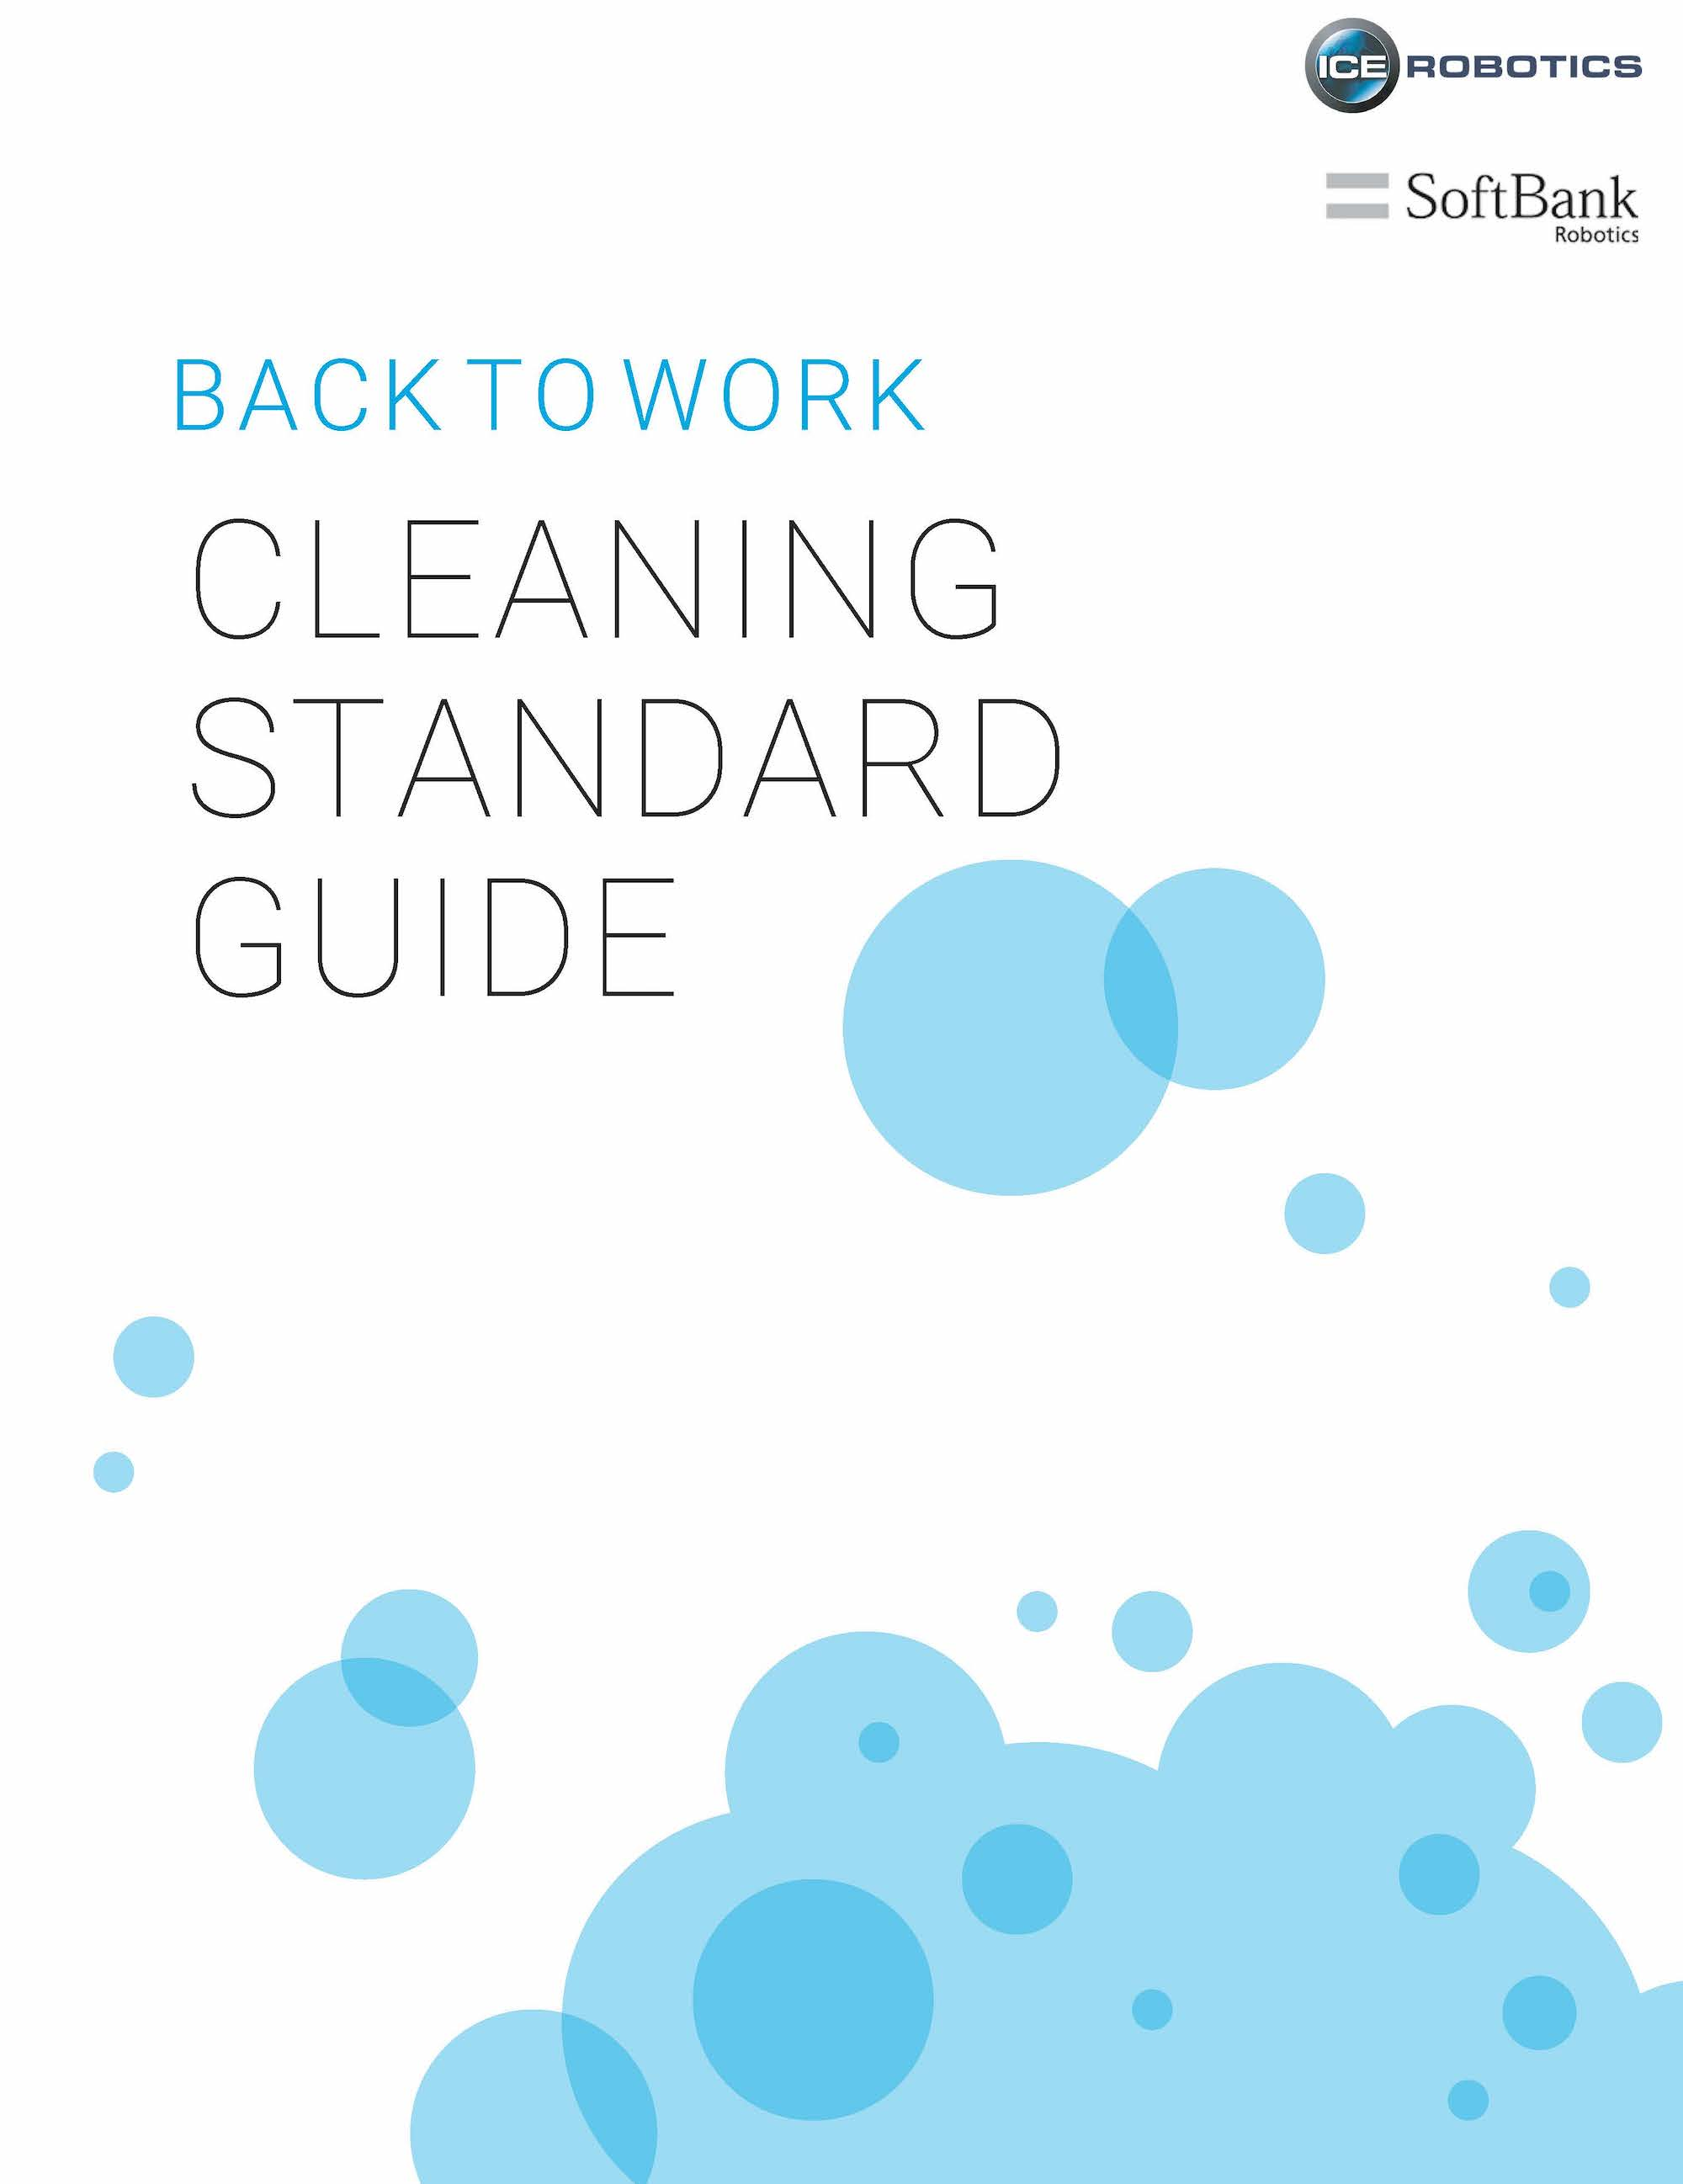 Back to Work Cleaning Standard Guide